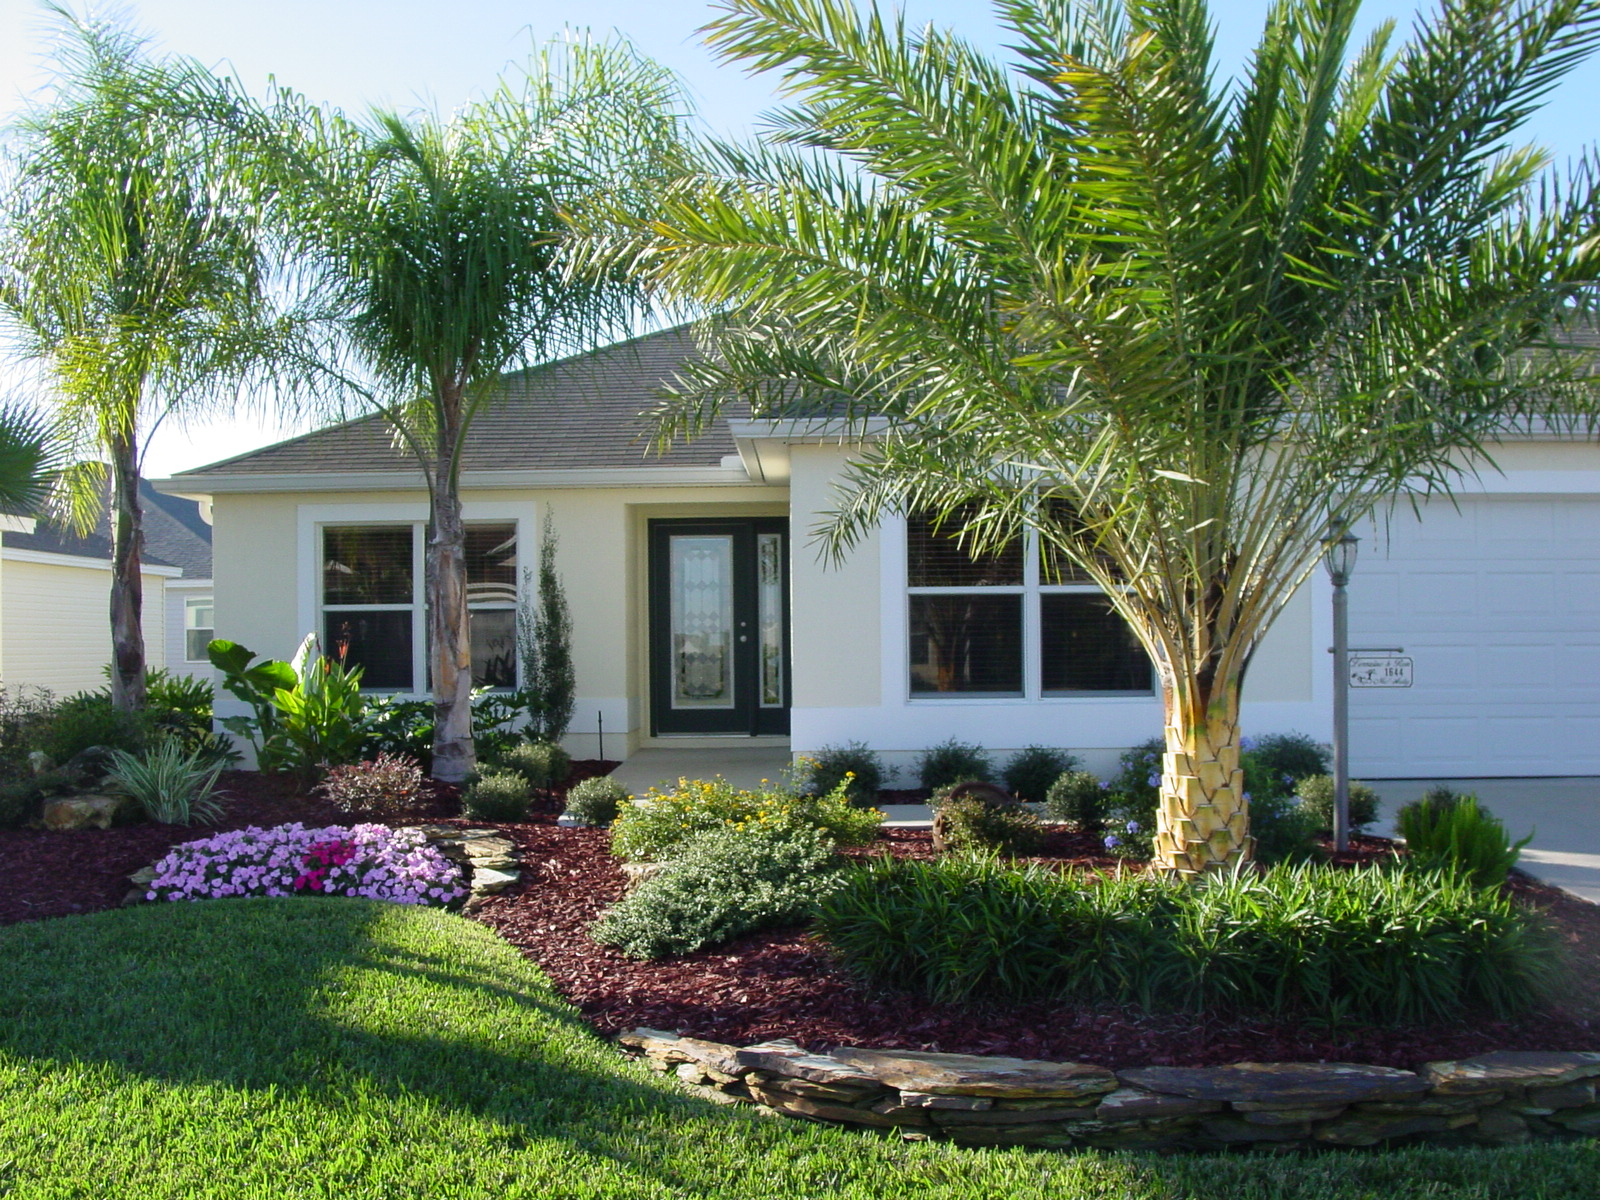 Florida garden landscape ideas photograph rons landscaping for Landscape design pictures